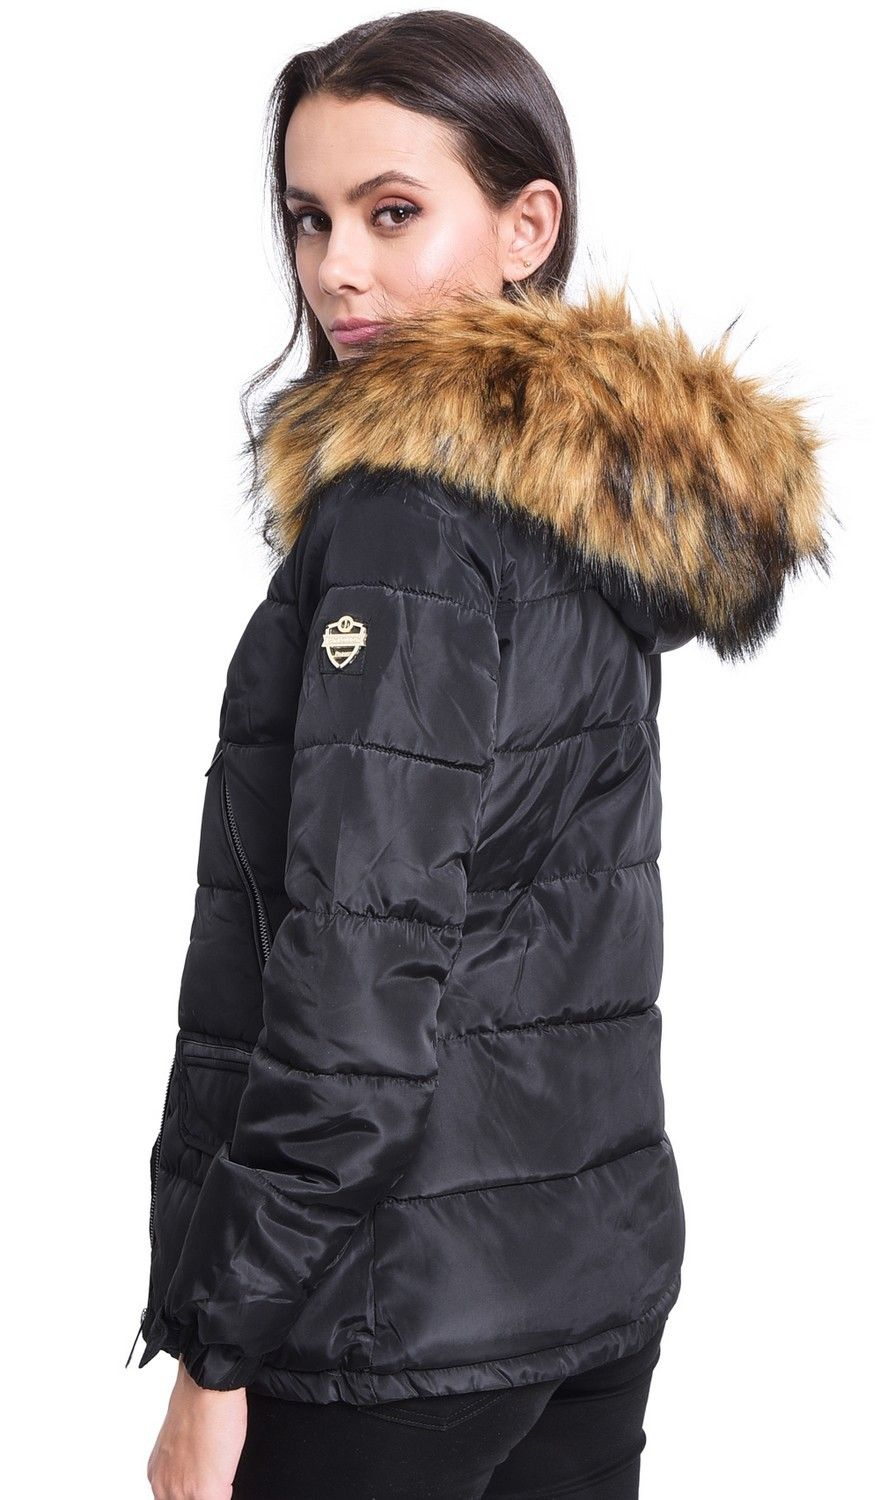 Assuili Down Jacket with Faux Fur Panel and Zipped Pockets in Black